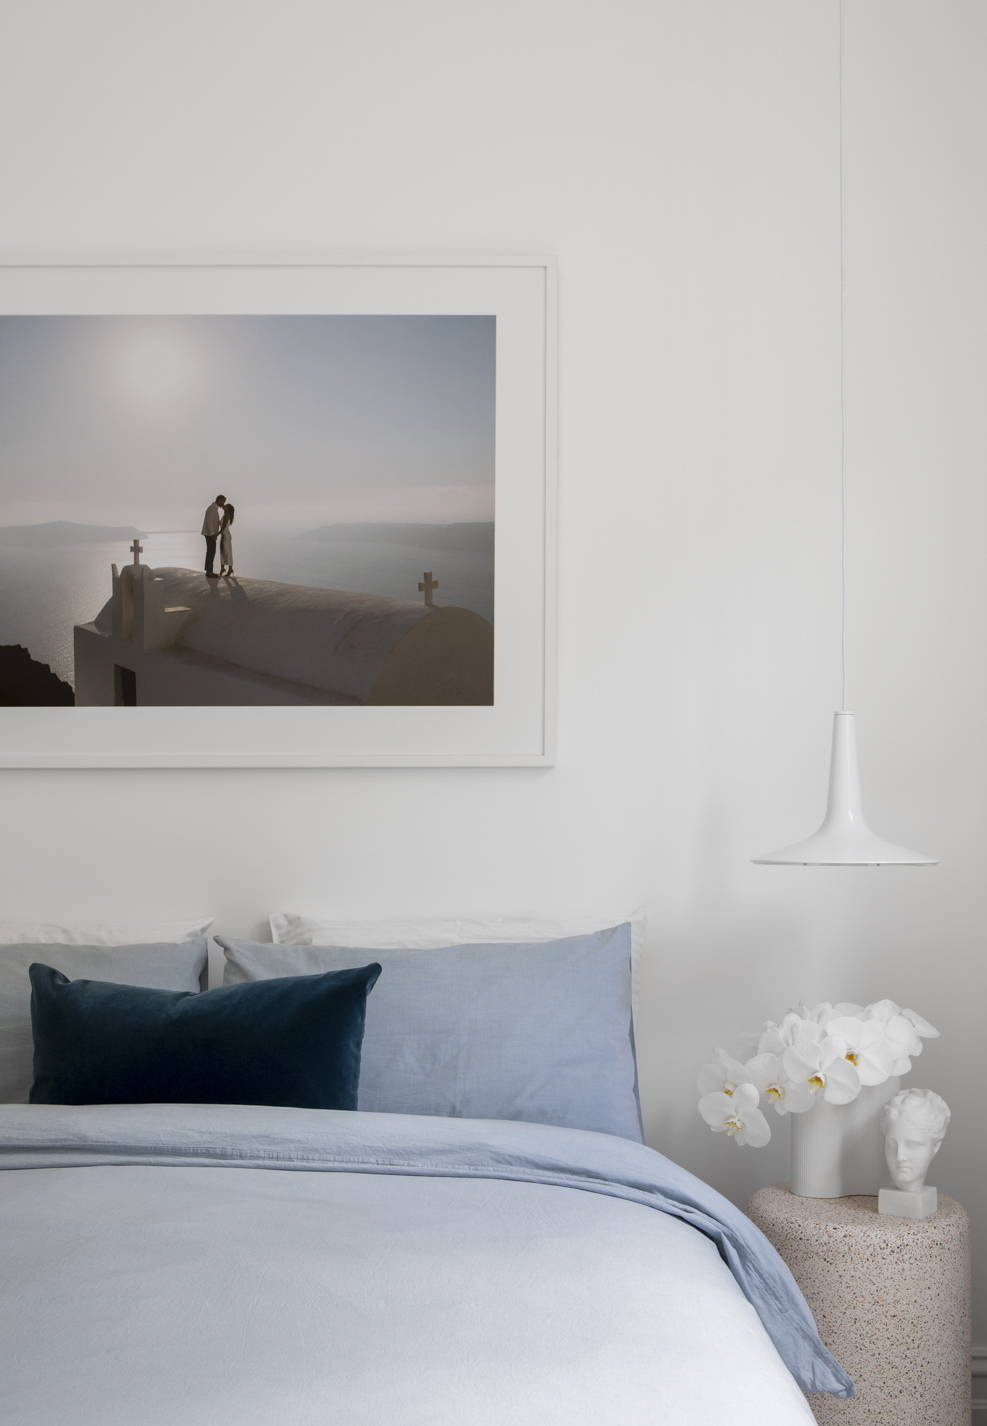 Wedding photography framed and hanging above a bed